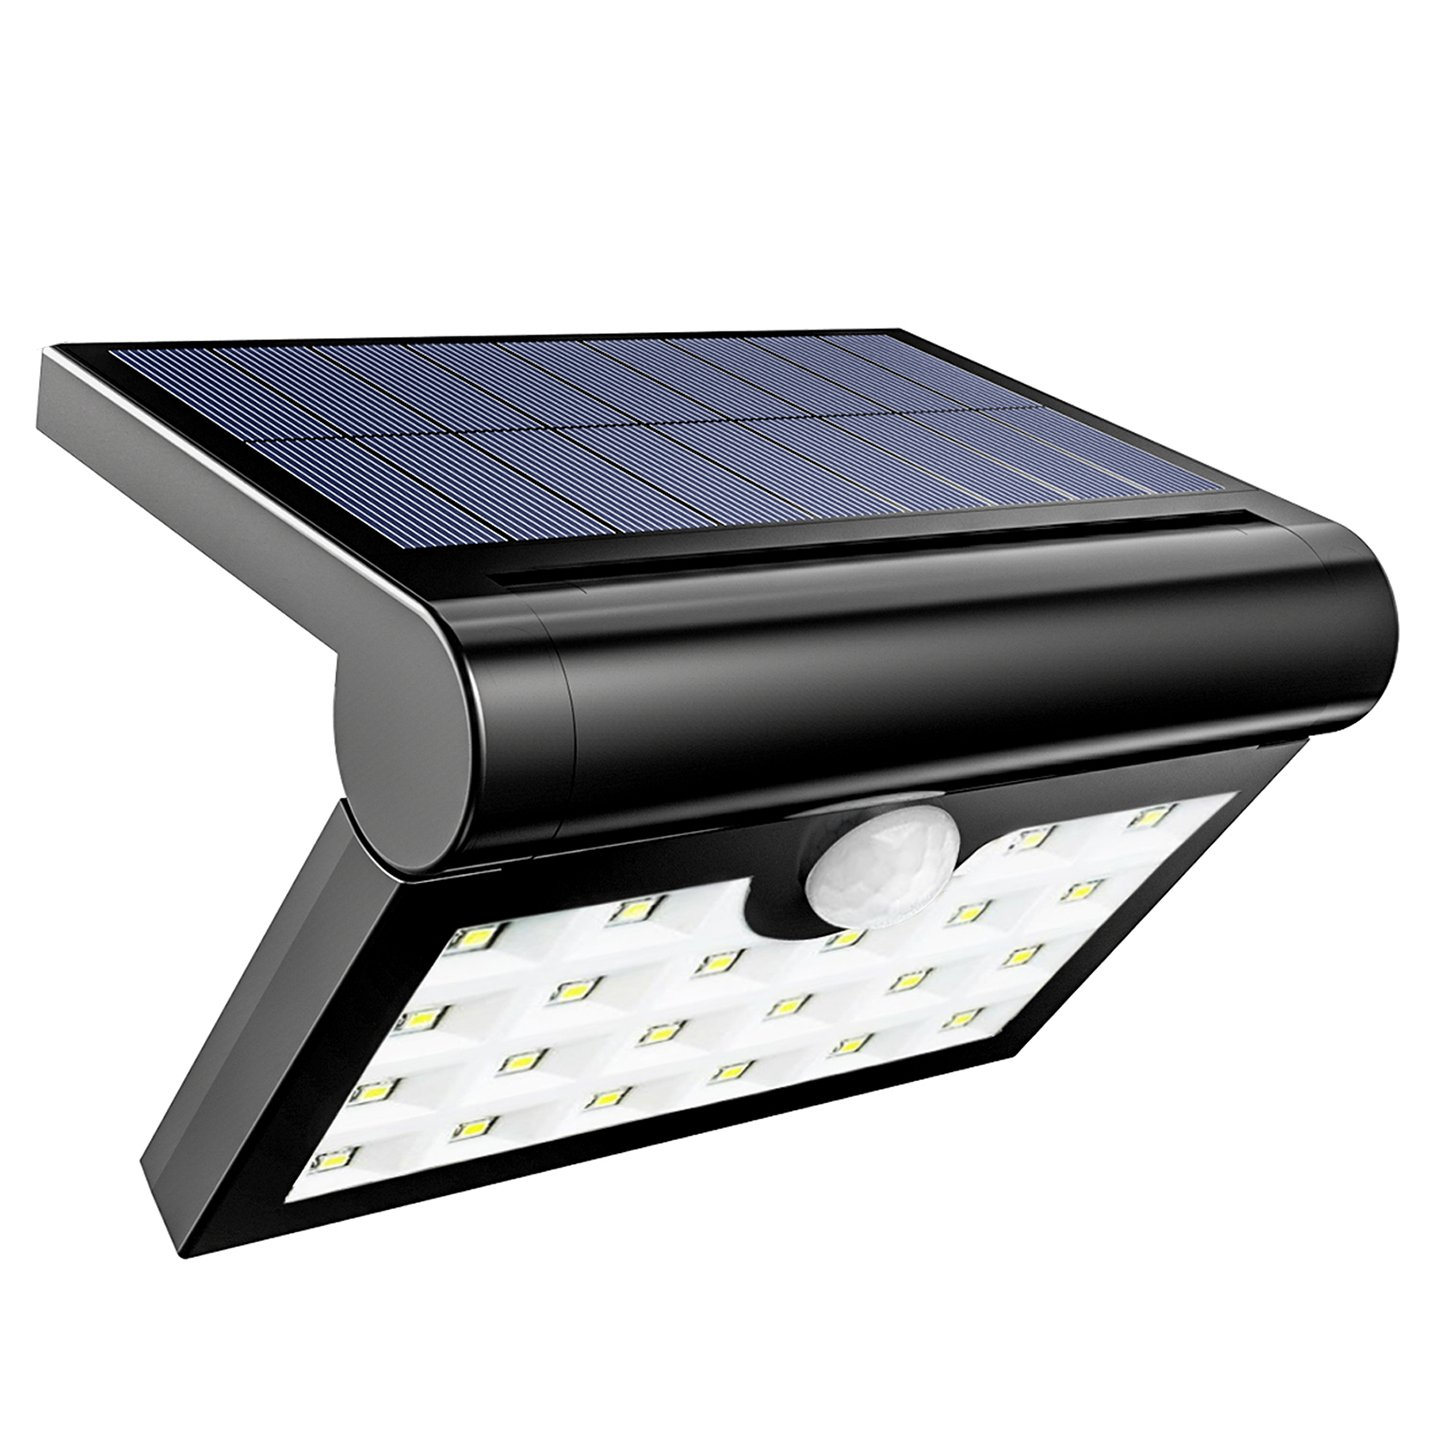 HSicily Solar Lights Outdoor Waterproof Wall Lights Wireless Motion Activated Auto On/Off Security Night Lights for Garden Patio Yard Deck Garage Driveway Porch Fence, 1 Pack